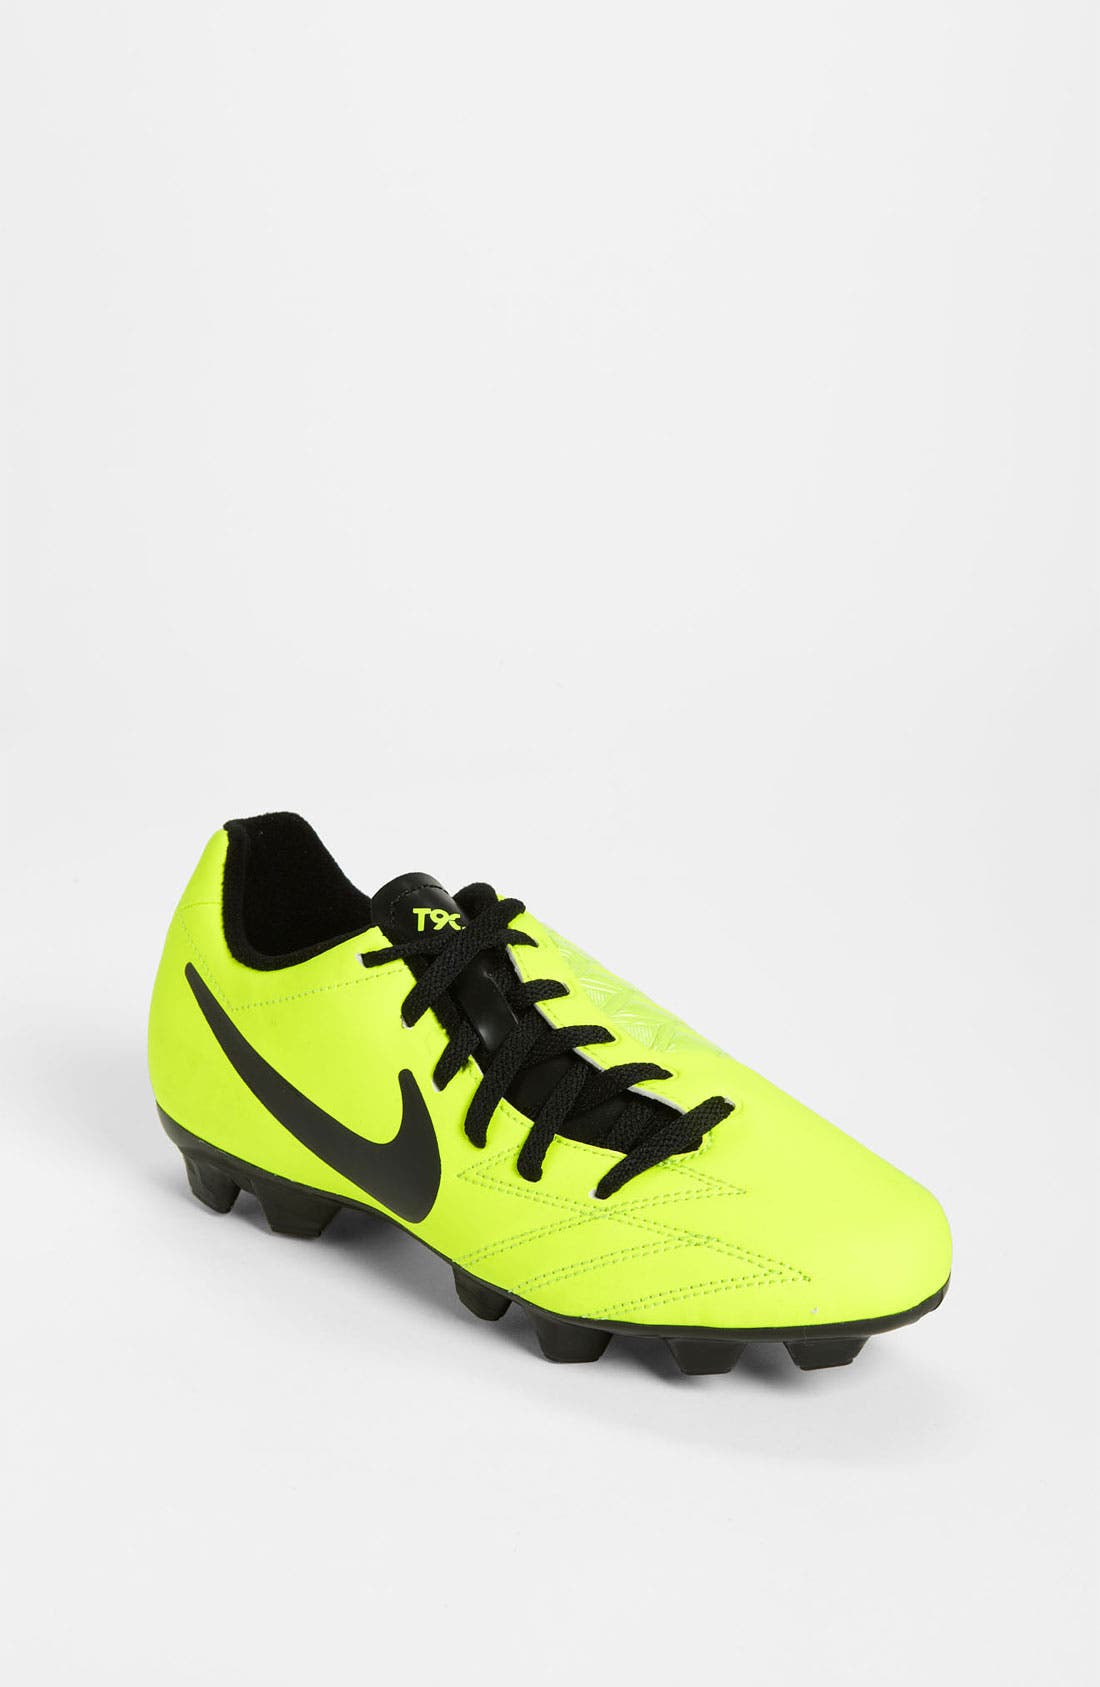 Alternate Image 1 Selected - Nike 'T-90 Shoot IV' Soccer Cleat (Toddler, Little Kid & Big Kid)